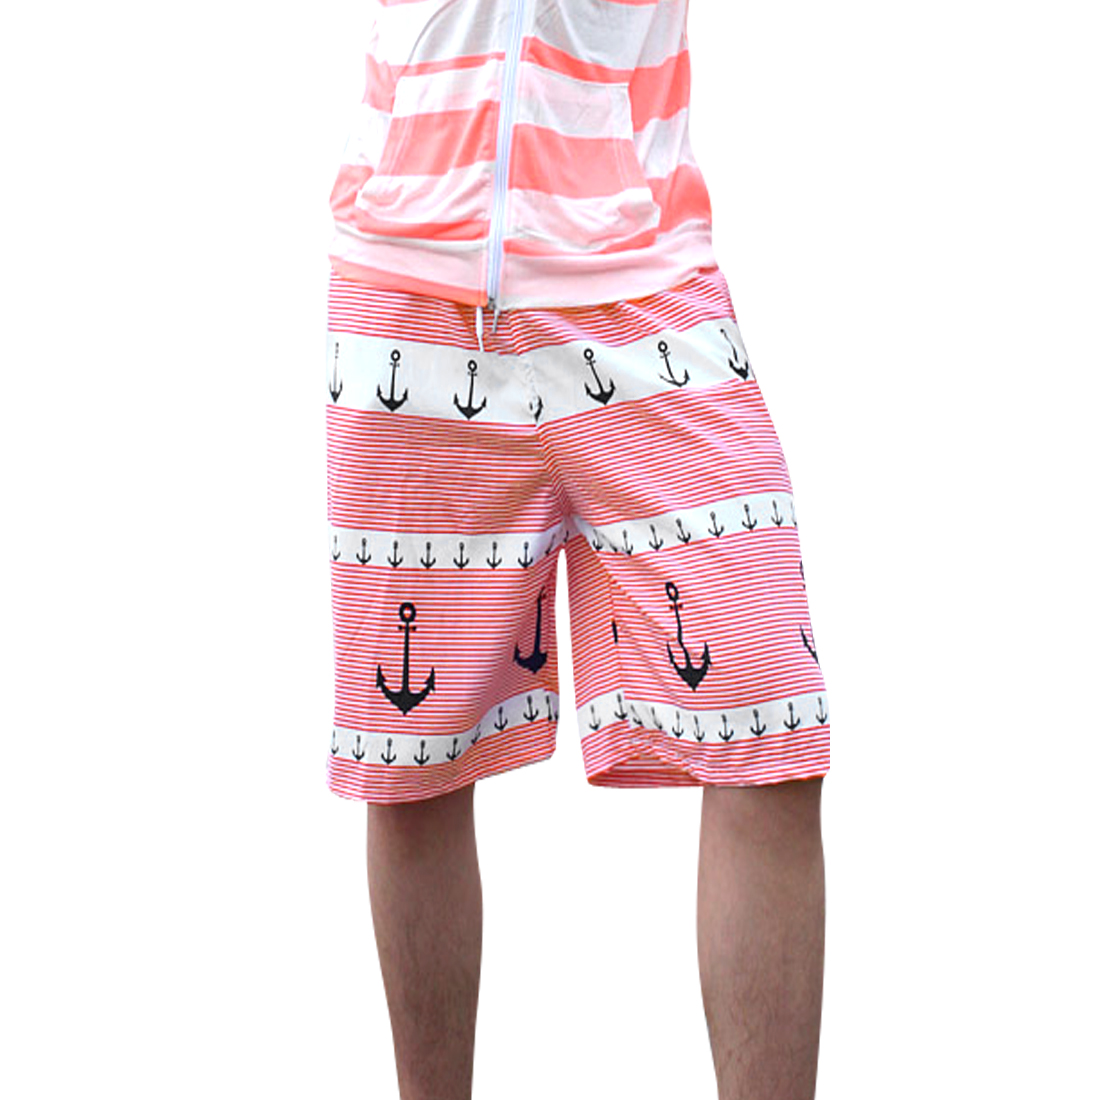 Men Stretchy Waist Back Pocket Drawstring Design Color Block Shorts W33 Red